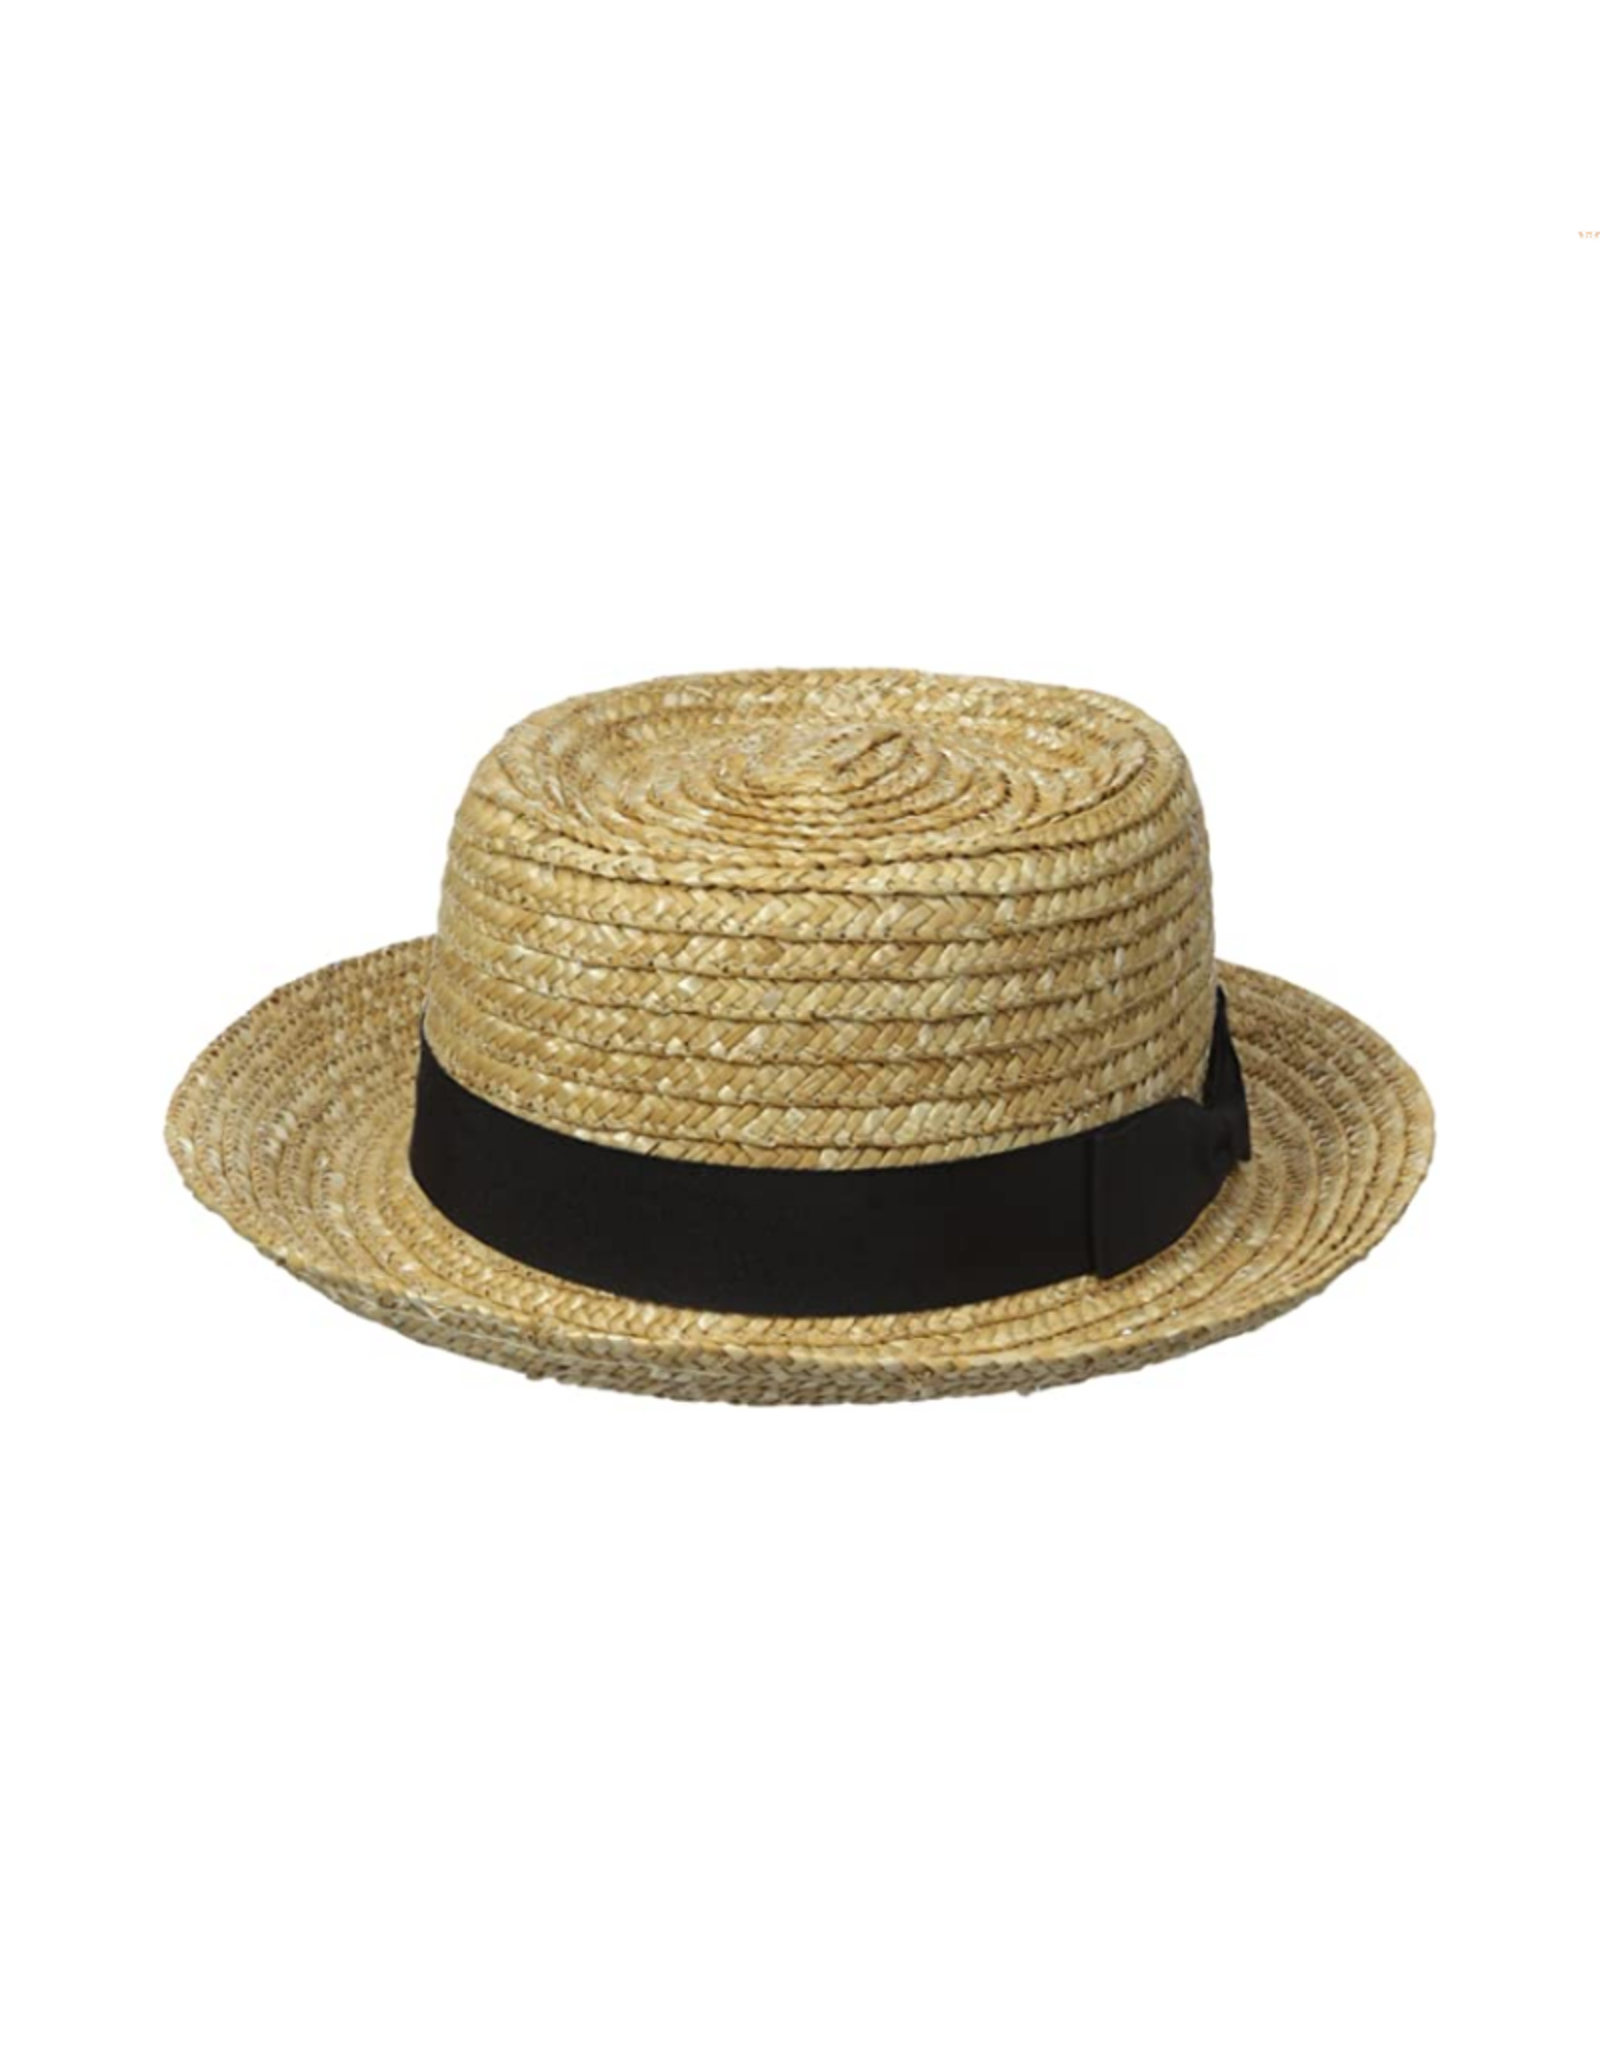 HAT-WOMENS-BOATER, STRAW, BLACK BAND, NATURAL